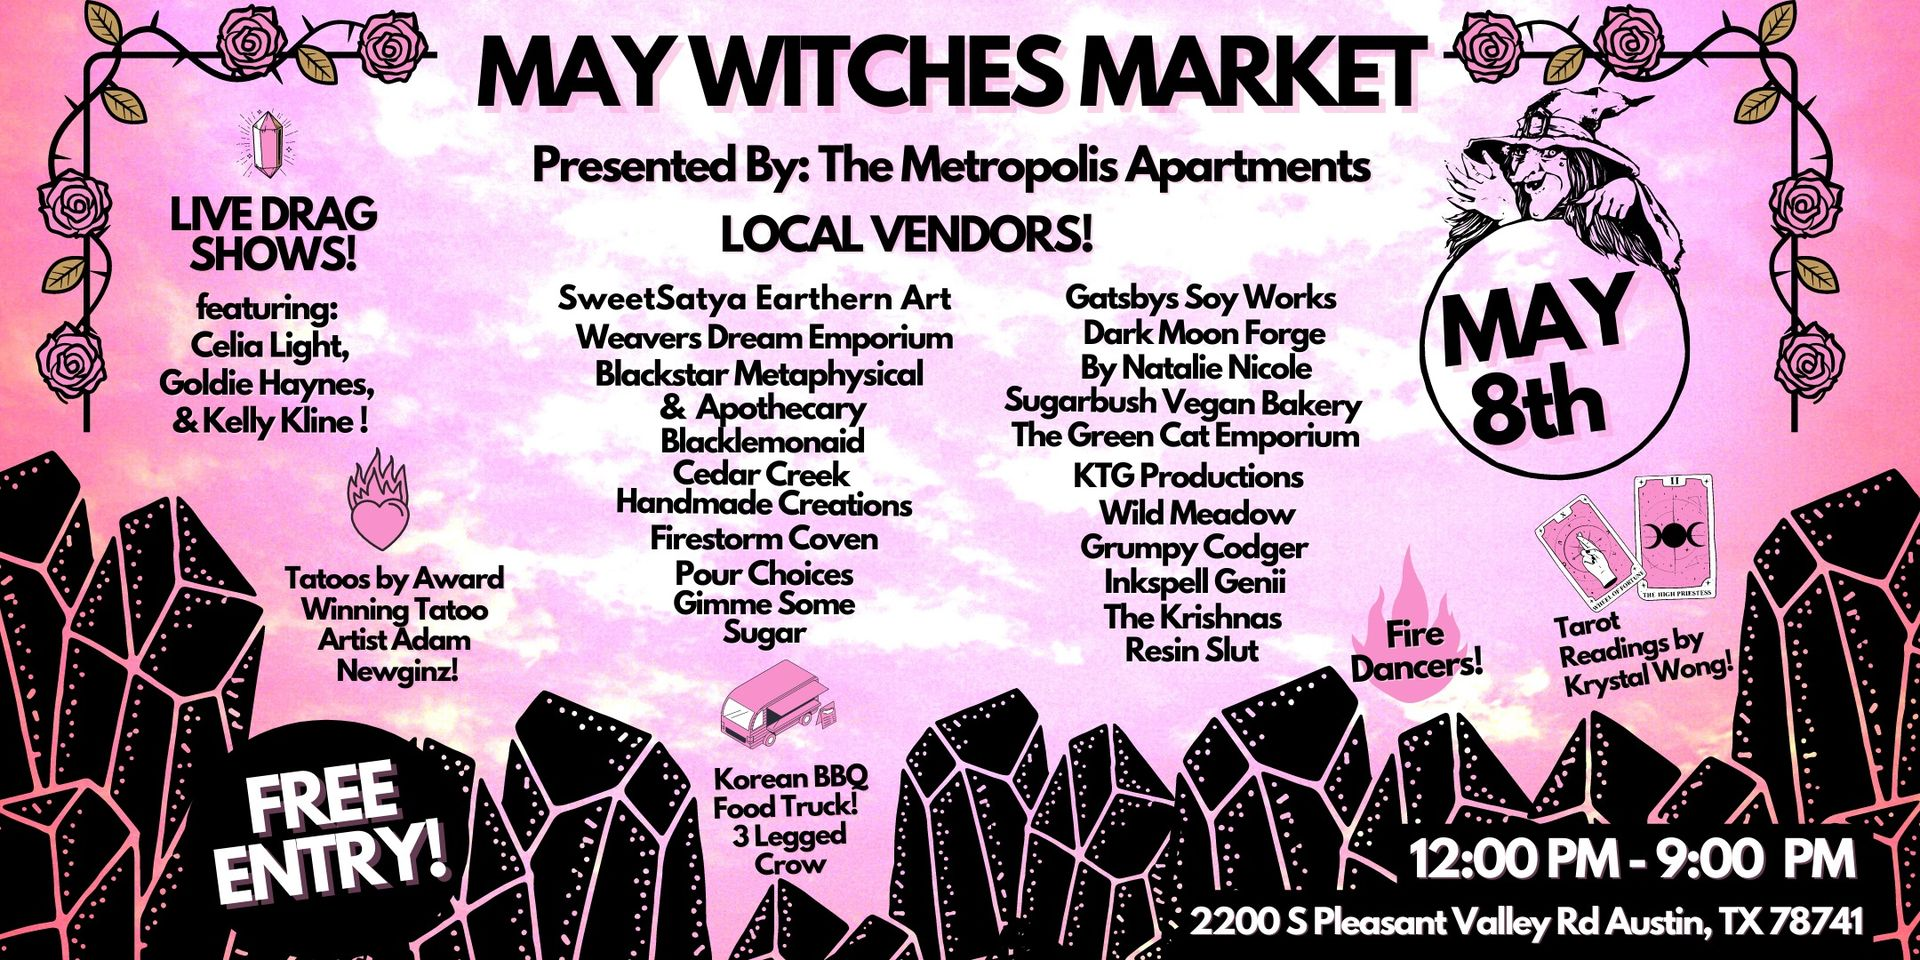 May Witches Market